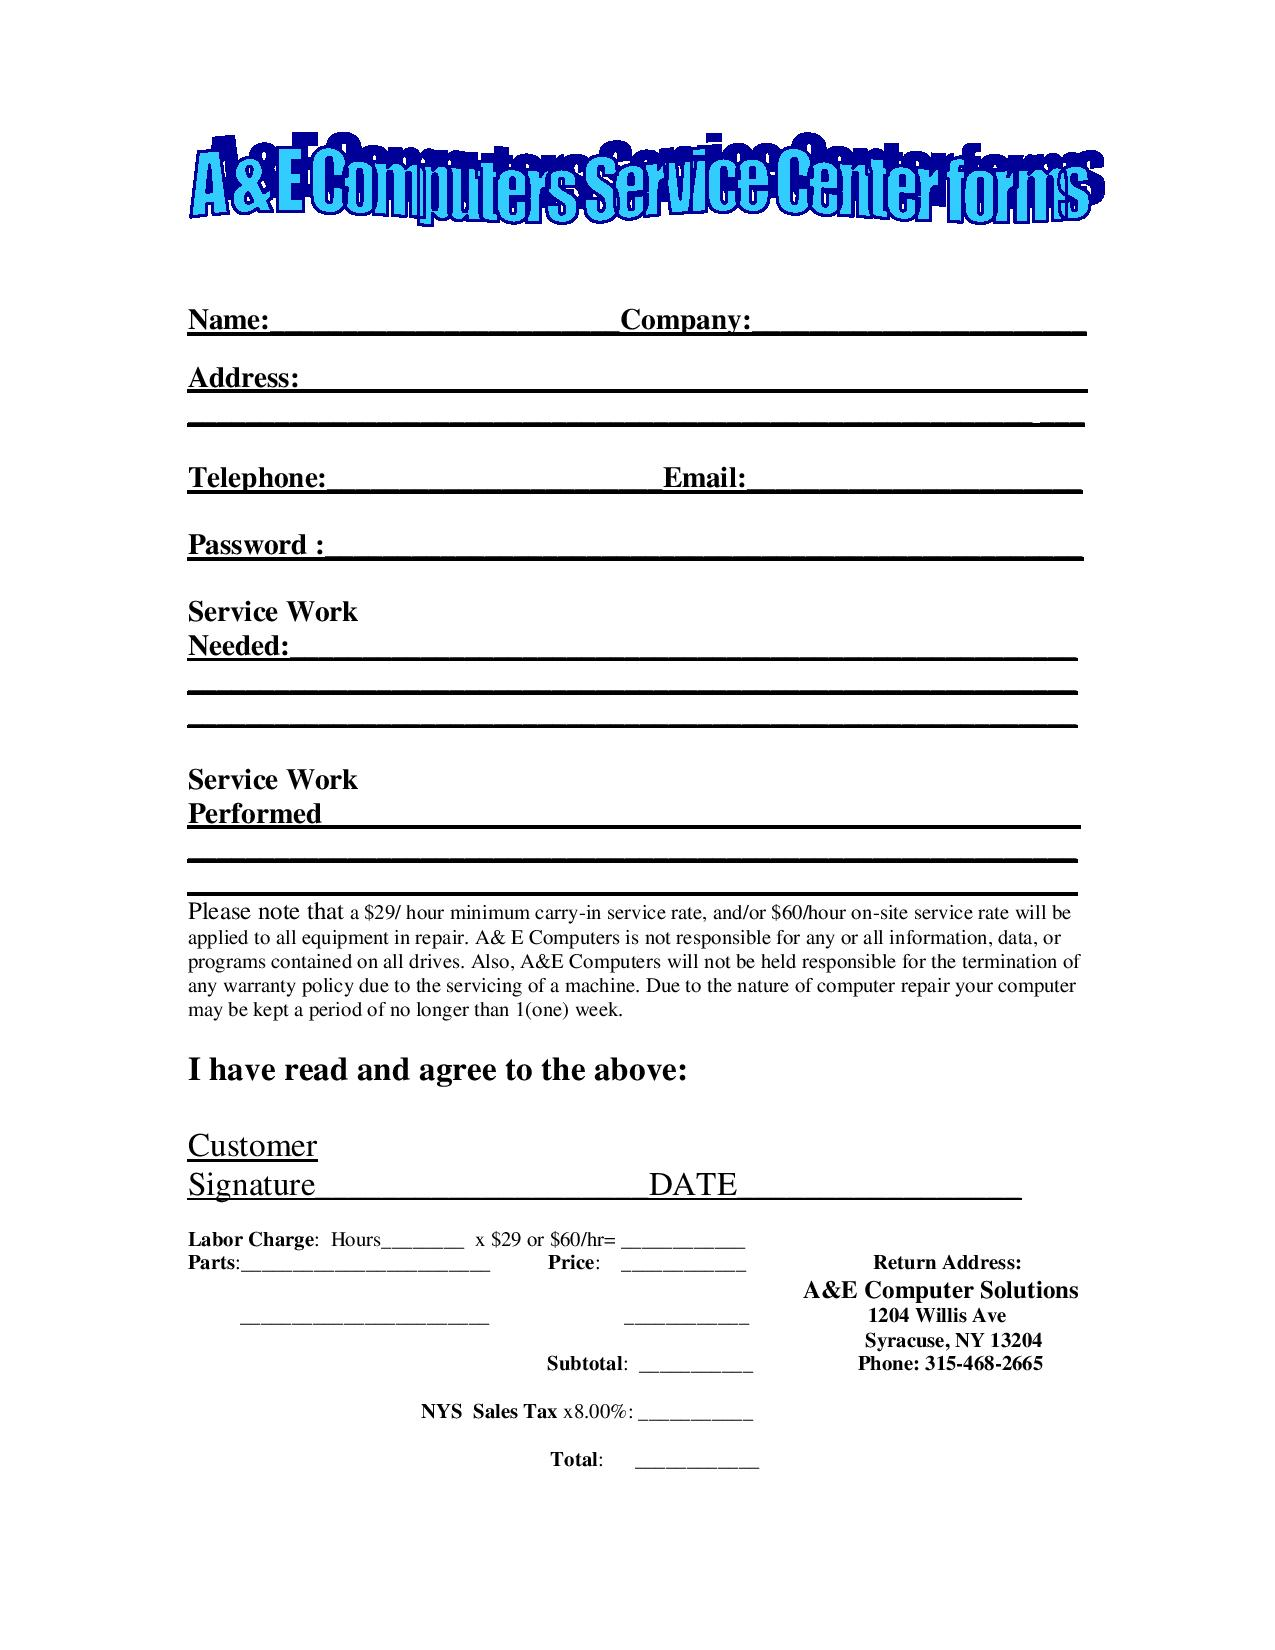 Service Form PDF Document